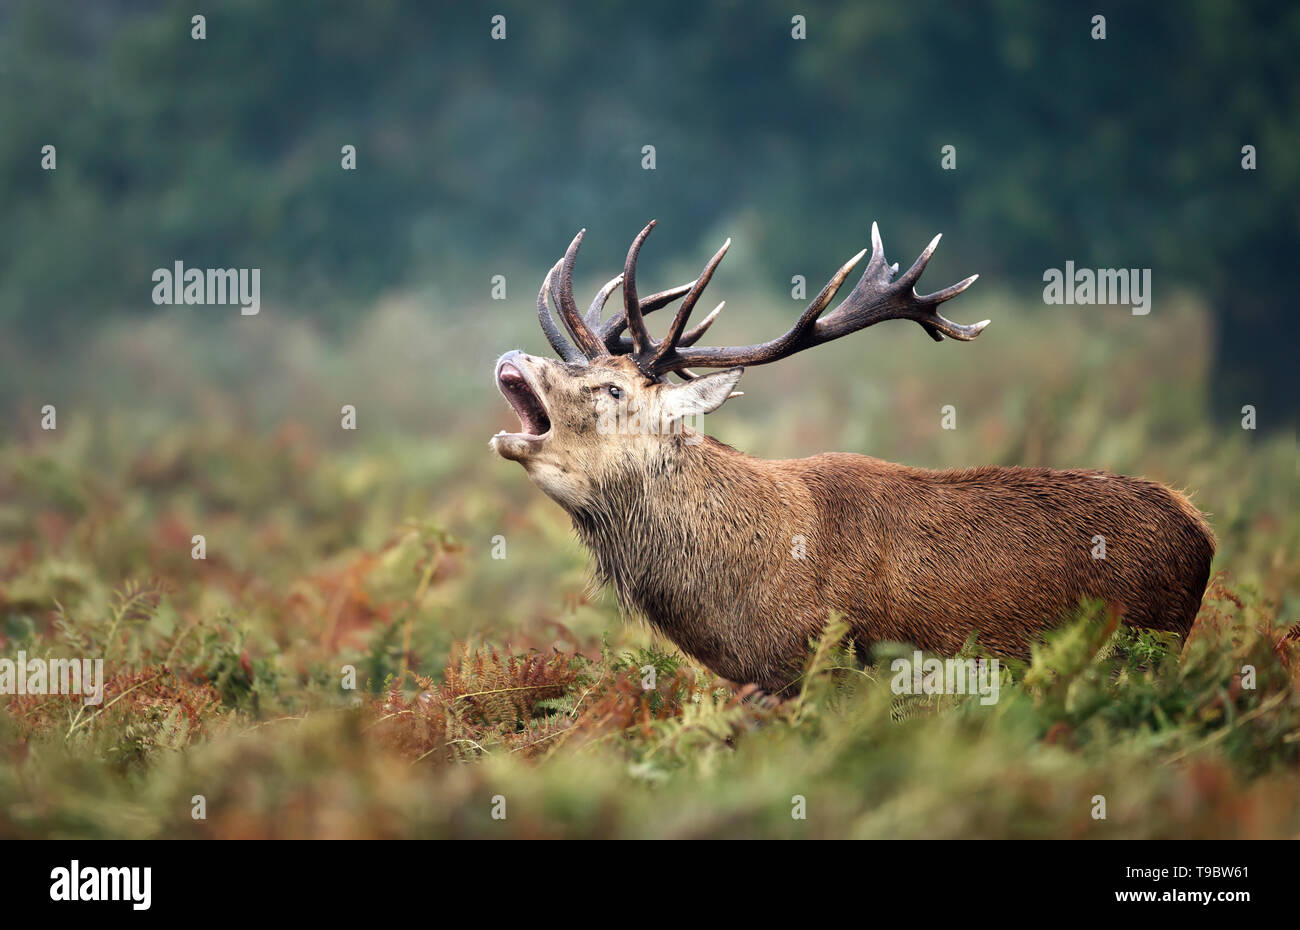 Close-up of a red deer stag calling during rutting season in autumn, UK. - Stock Image